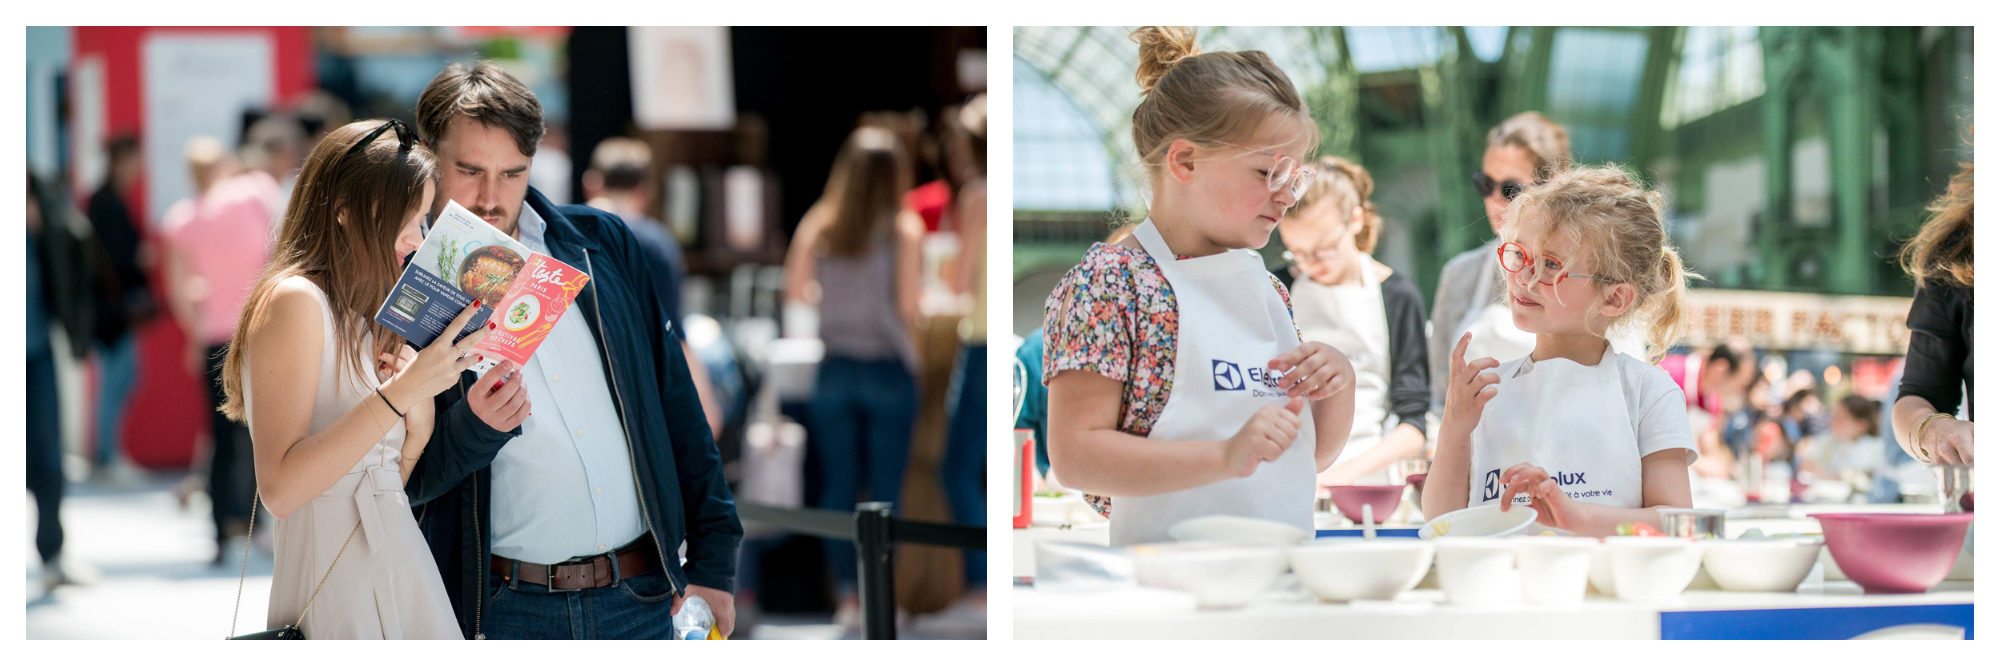 The annual food festival Taste of Paris takes place each May in Paris where people come to explore the different stalls (left) and there are also kids' workshops (right).